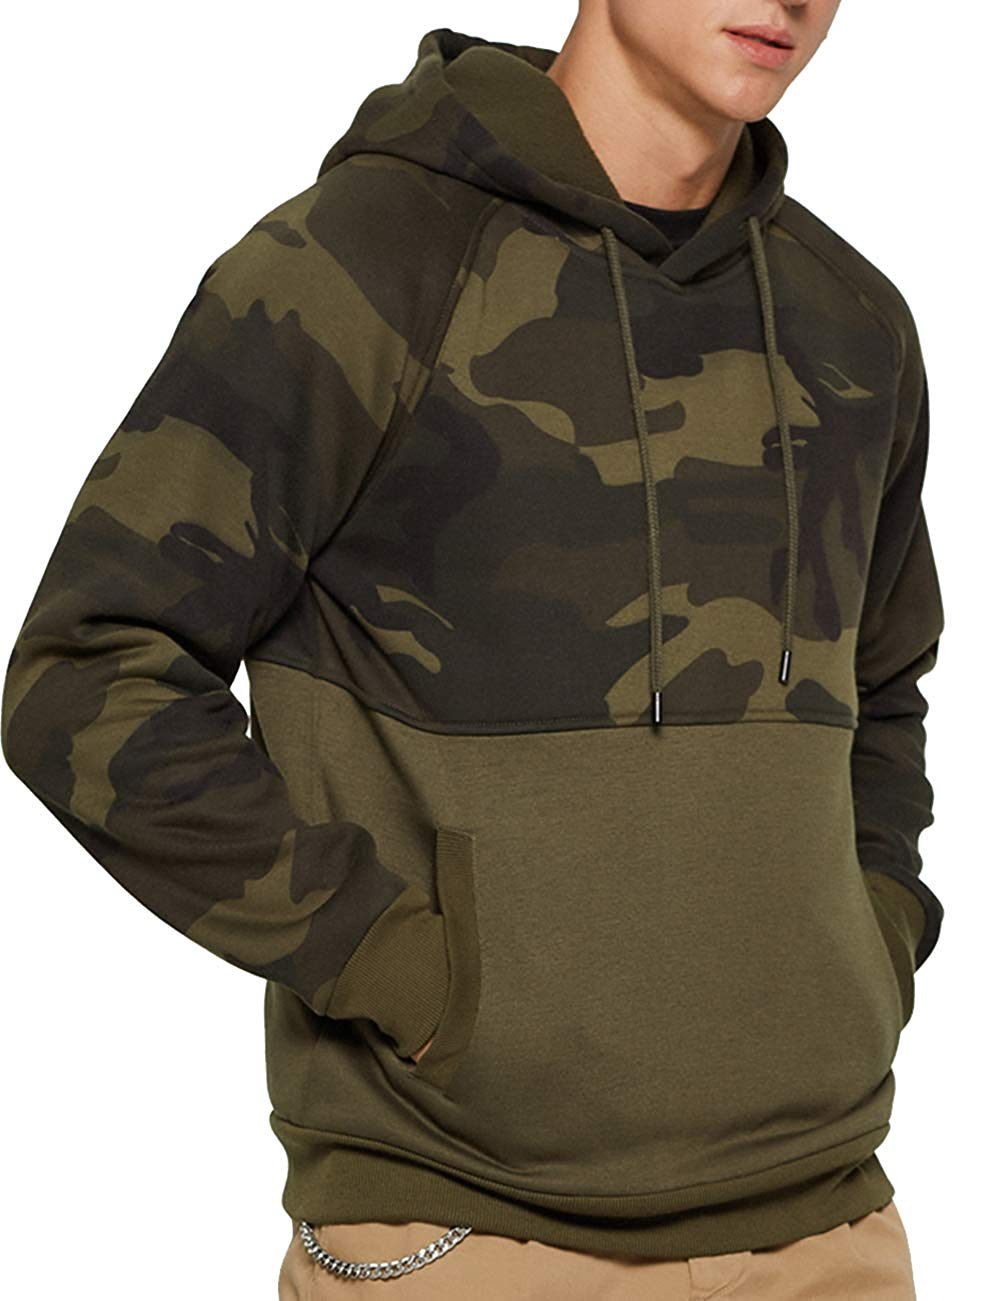 Fashion Fleece Hoodies Men Army Camo Hooded Sweatshrits Kanga Pocket Hoody Outwear Male Sportswear Super Mens Camouflage Hoodie